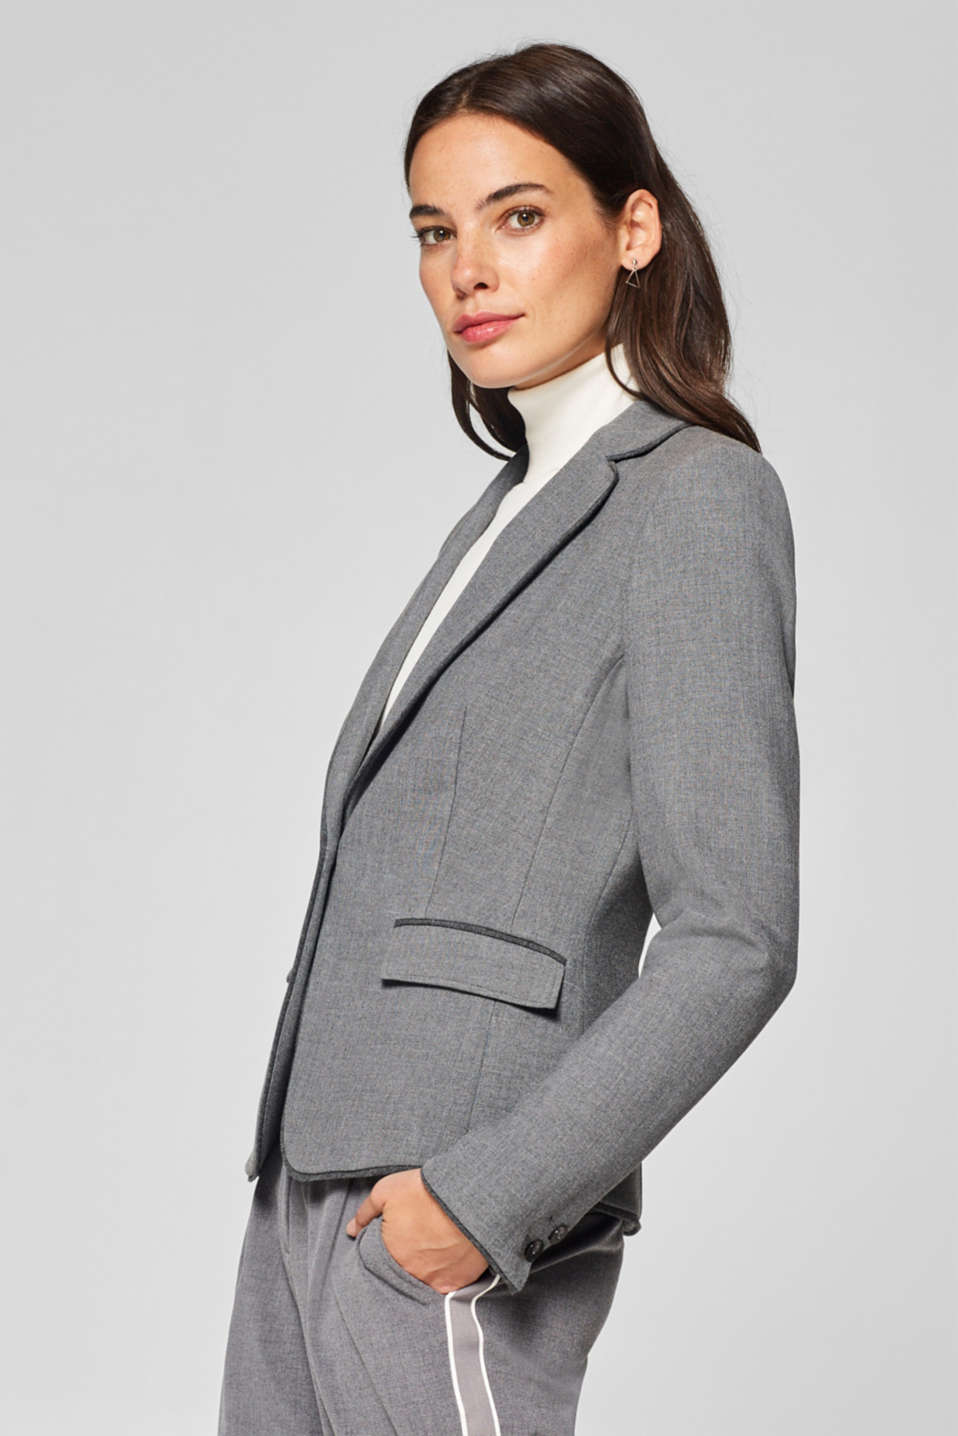 Esprit - Piped stretch jersey blazer